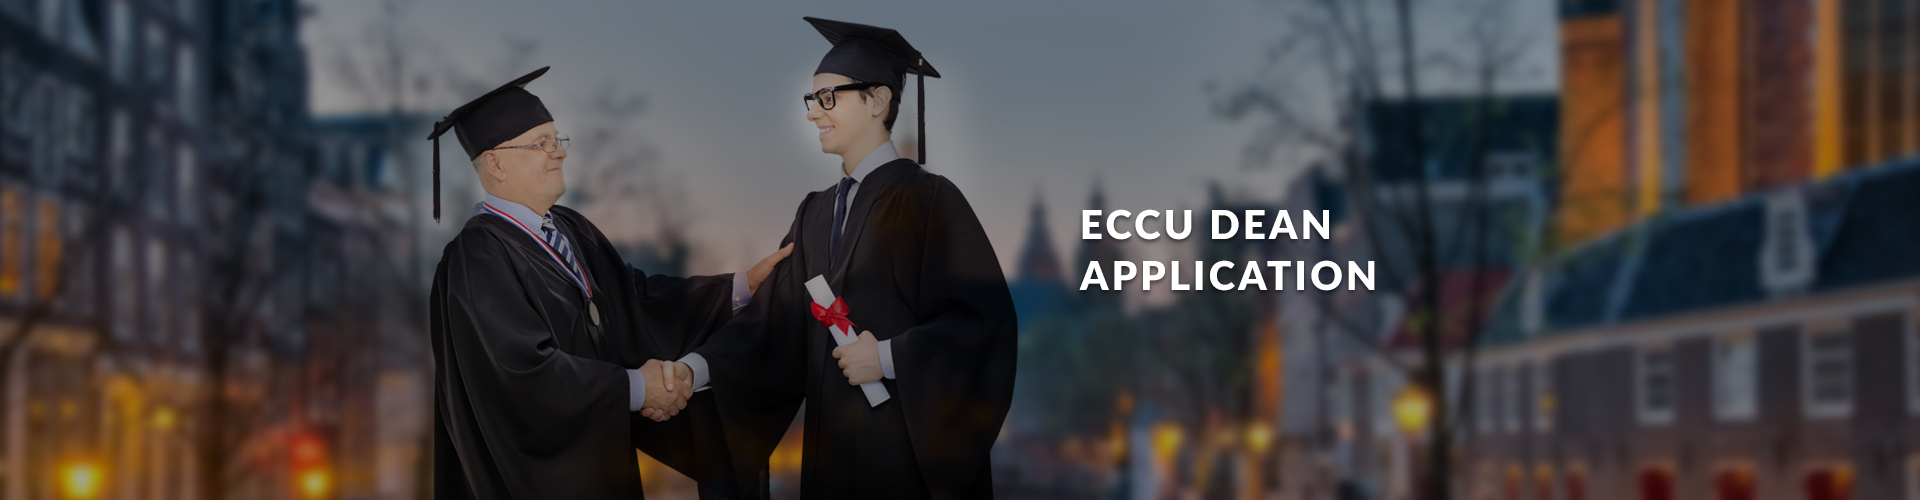 ECCU Dean Application